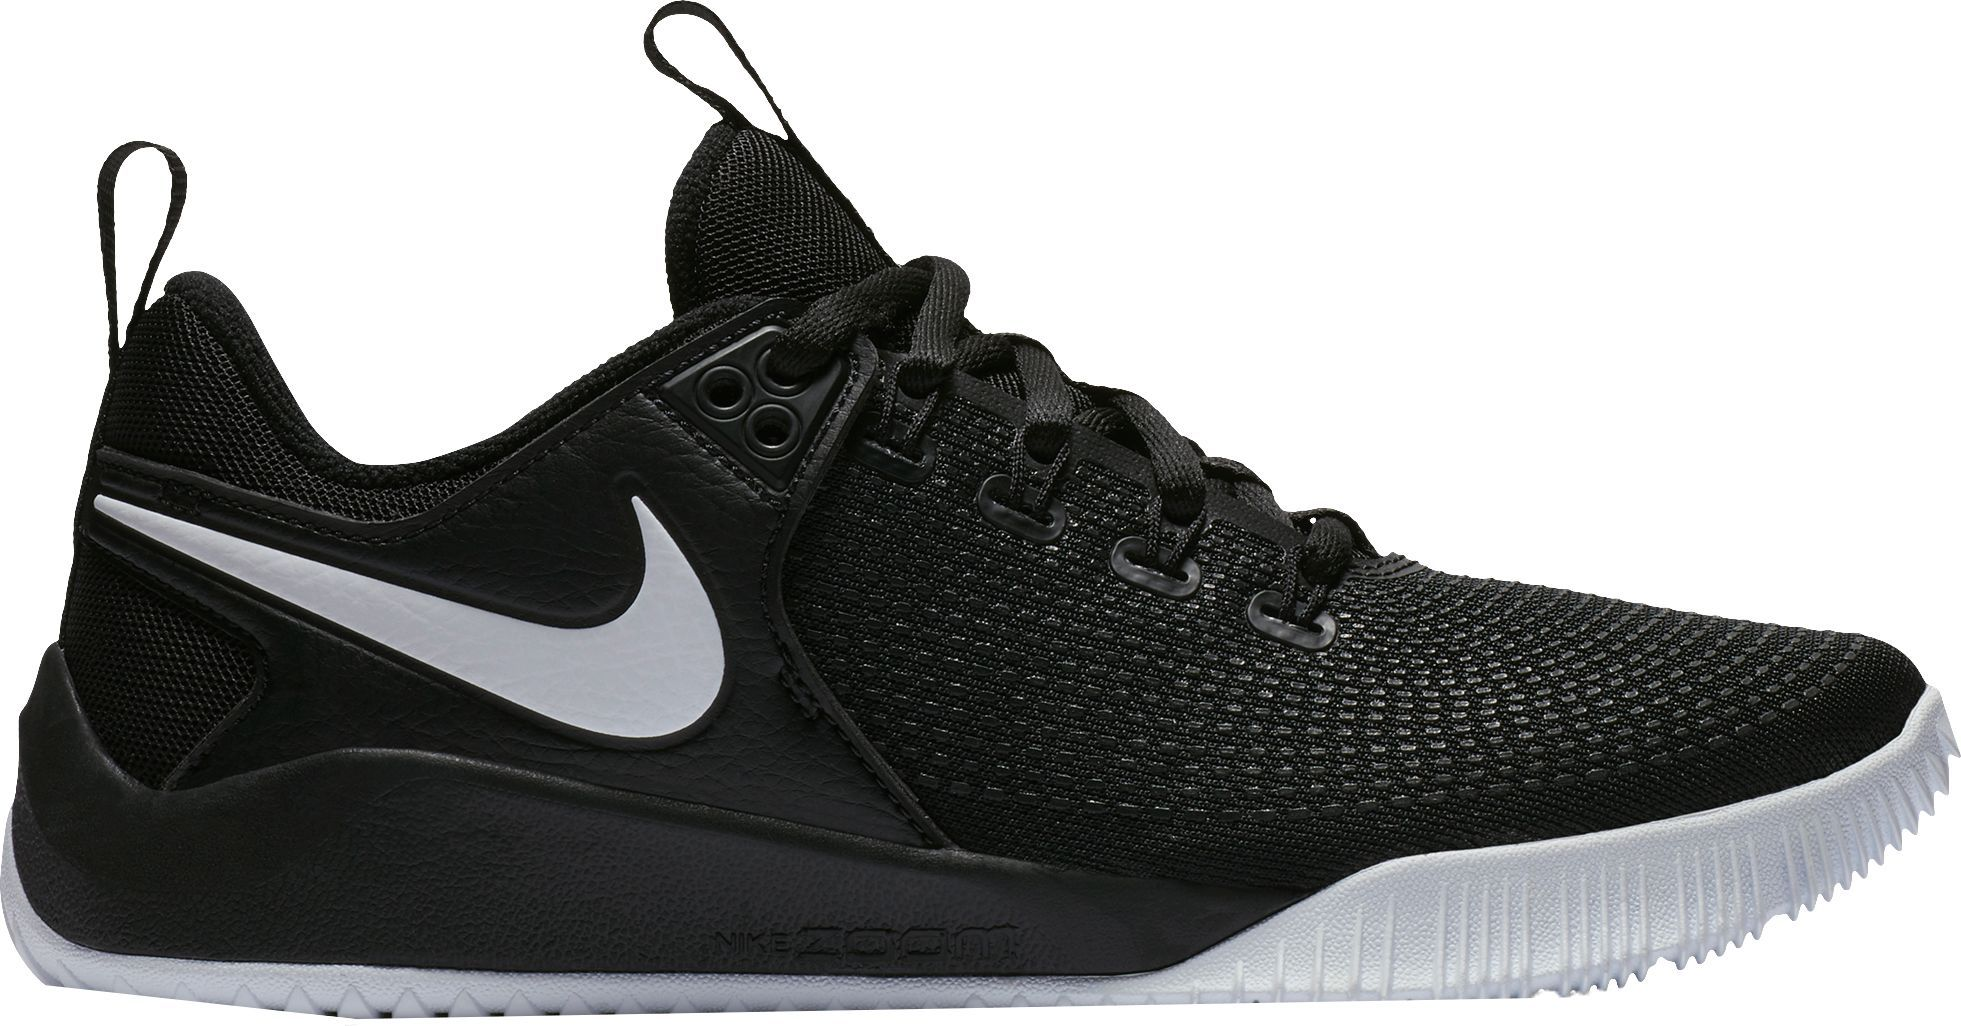 Nike Women S Zoom Hyperace 2 Volleyball Shoes Black In 2020 Volleyball Shoes Nike Volleyball Shoes Nike